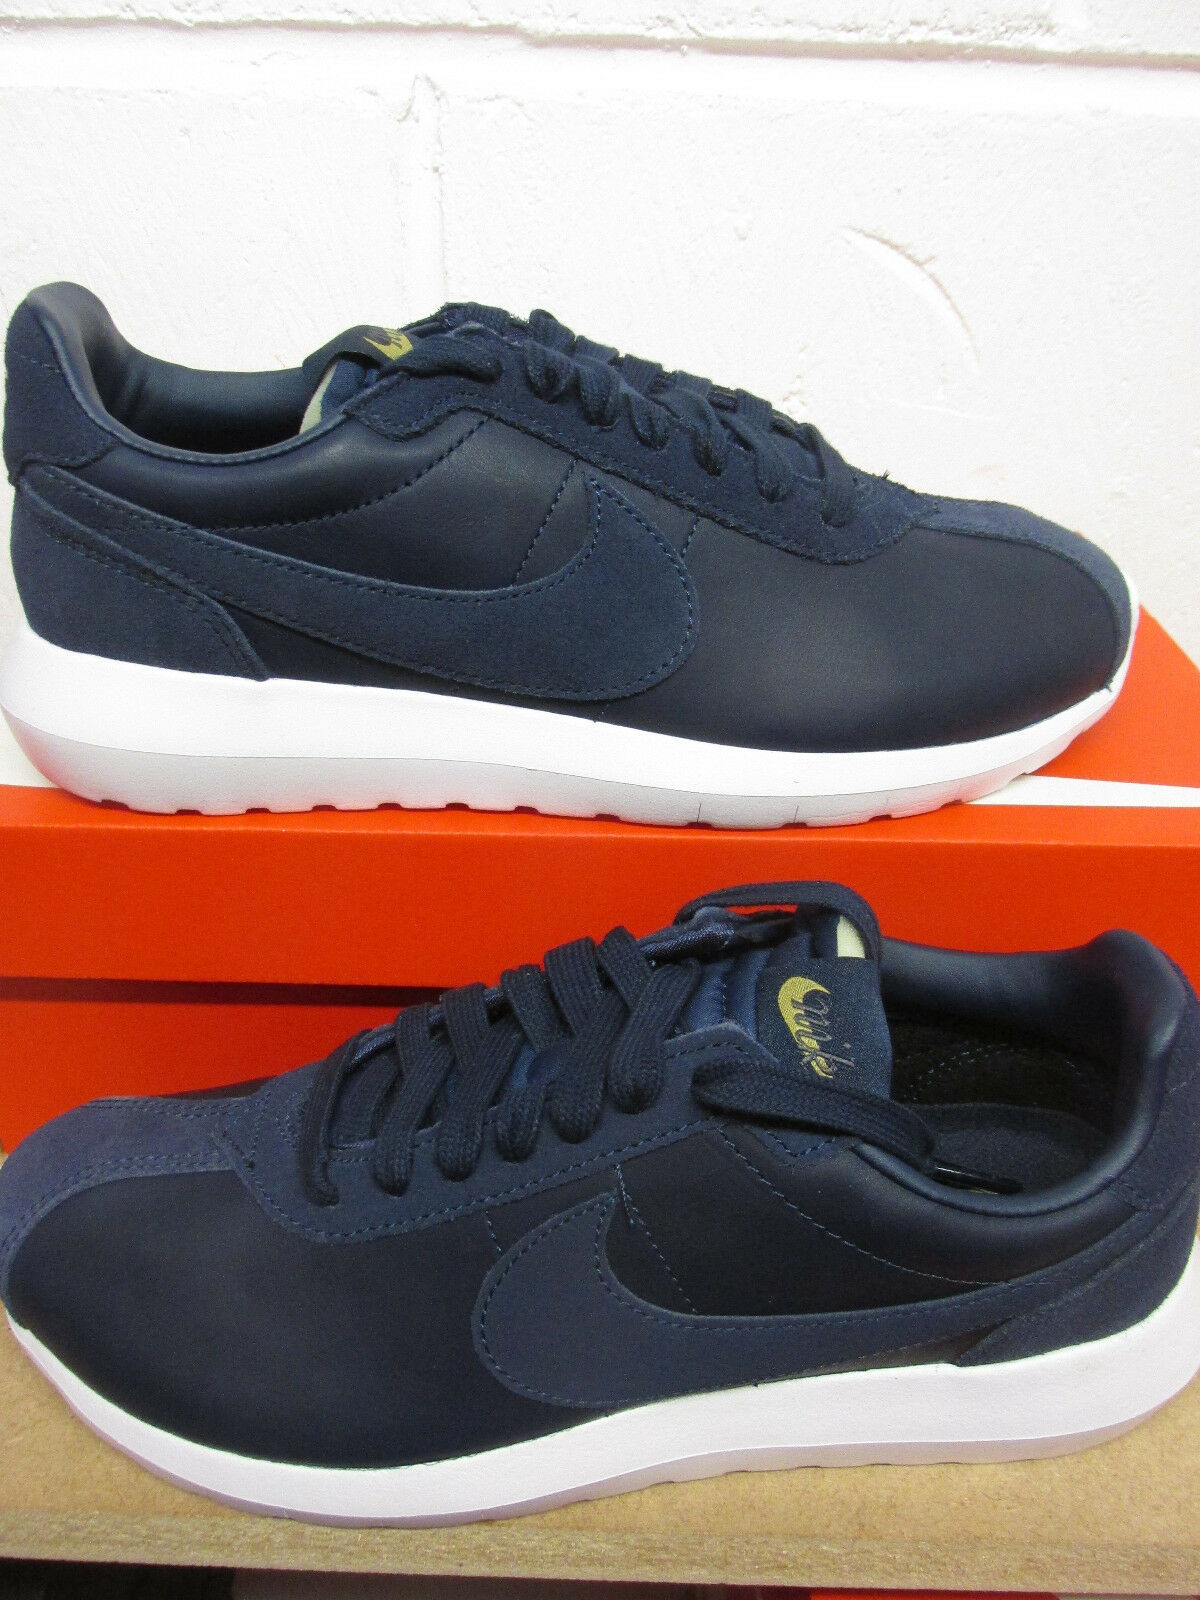 NIke Roshe LD-1000 Trainers Premium QS Hombre Running Trainers LD-1000 842564 401 Sneakers Zapatos 233759